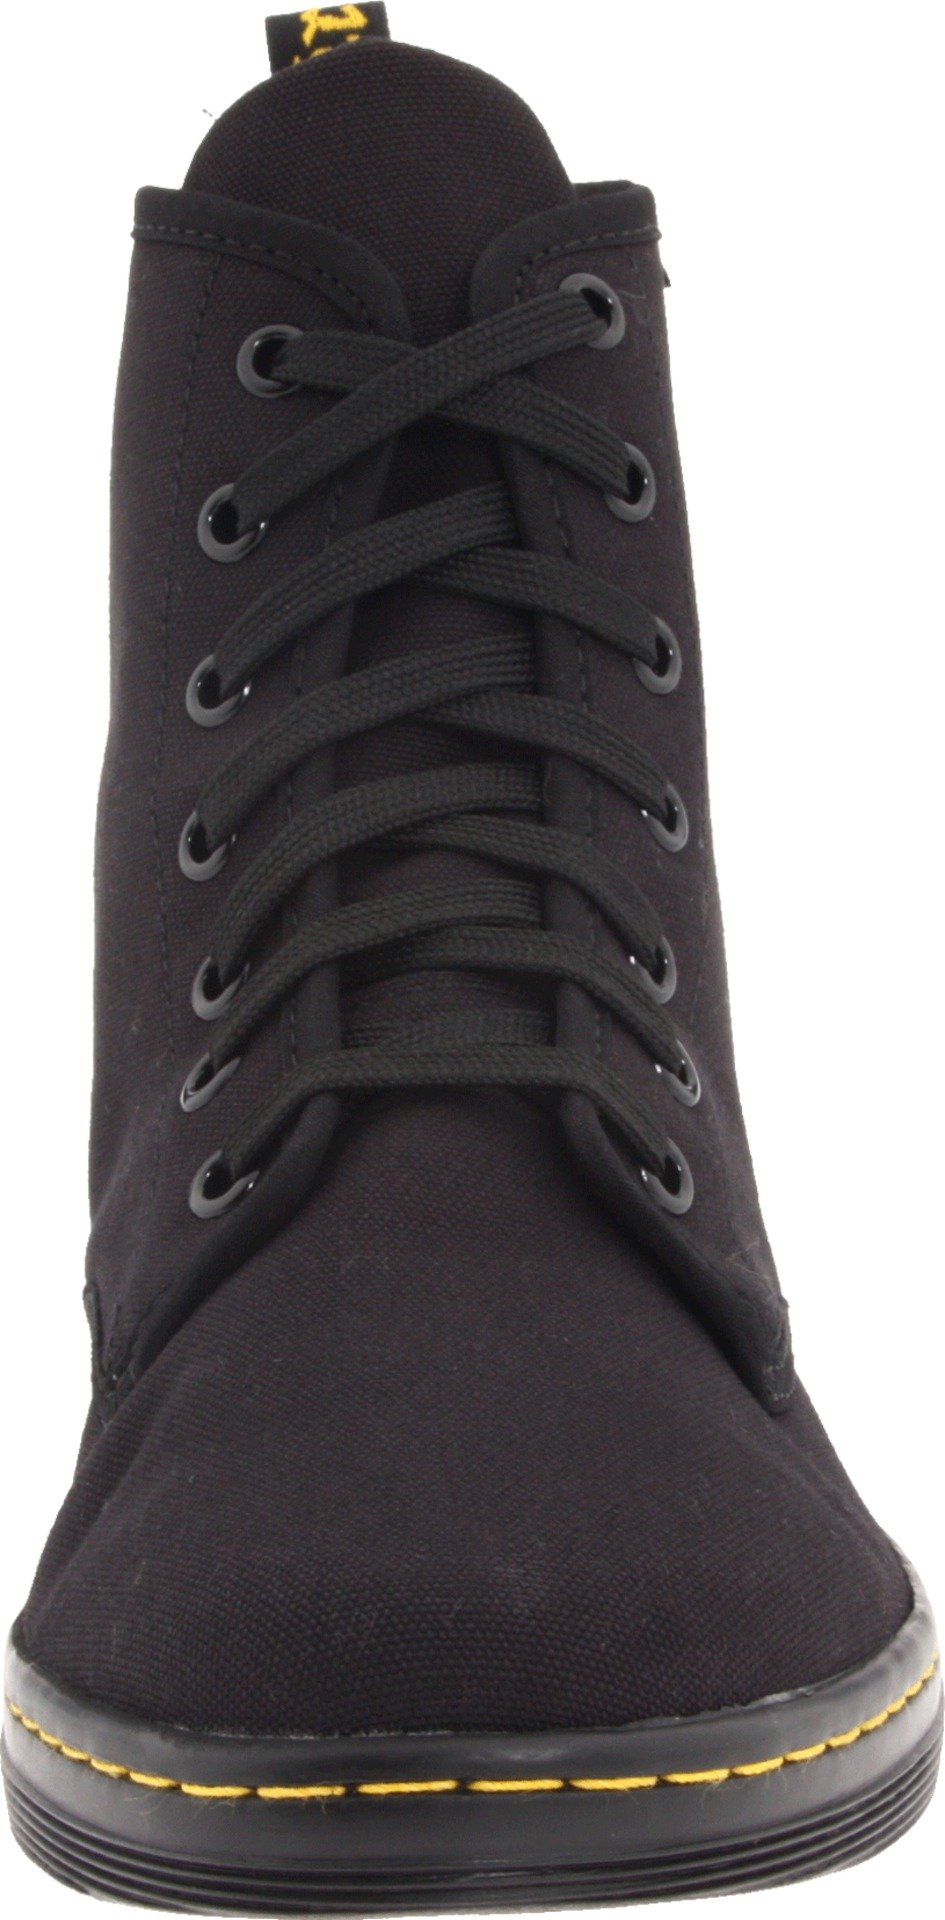 Dr. Martens Women's Shoreditch Boot,Black,5 UK (US Women's 7 M) by Dr. Martens (Image #4)